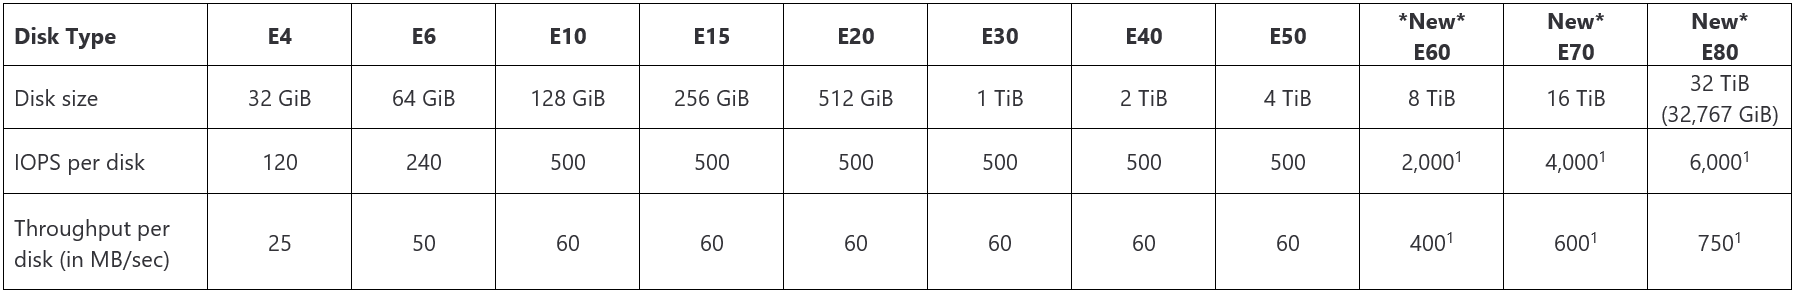 Table displaying Standard SSD disks type, size, IOPS per disk, and throughput per disk.